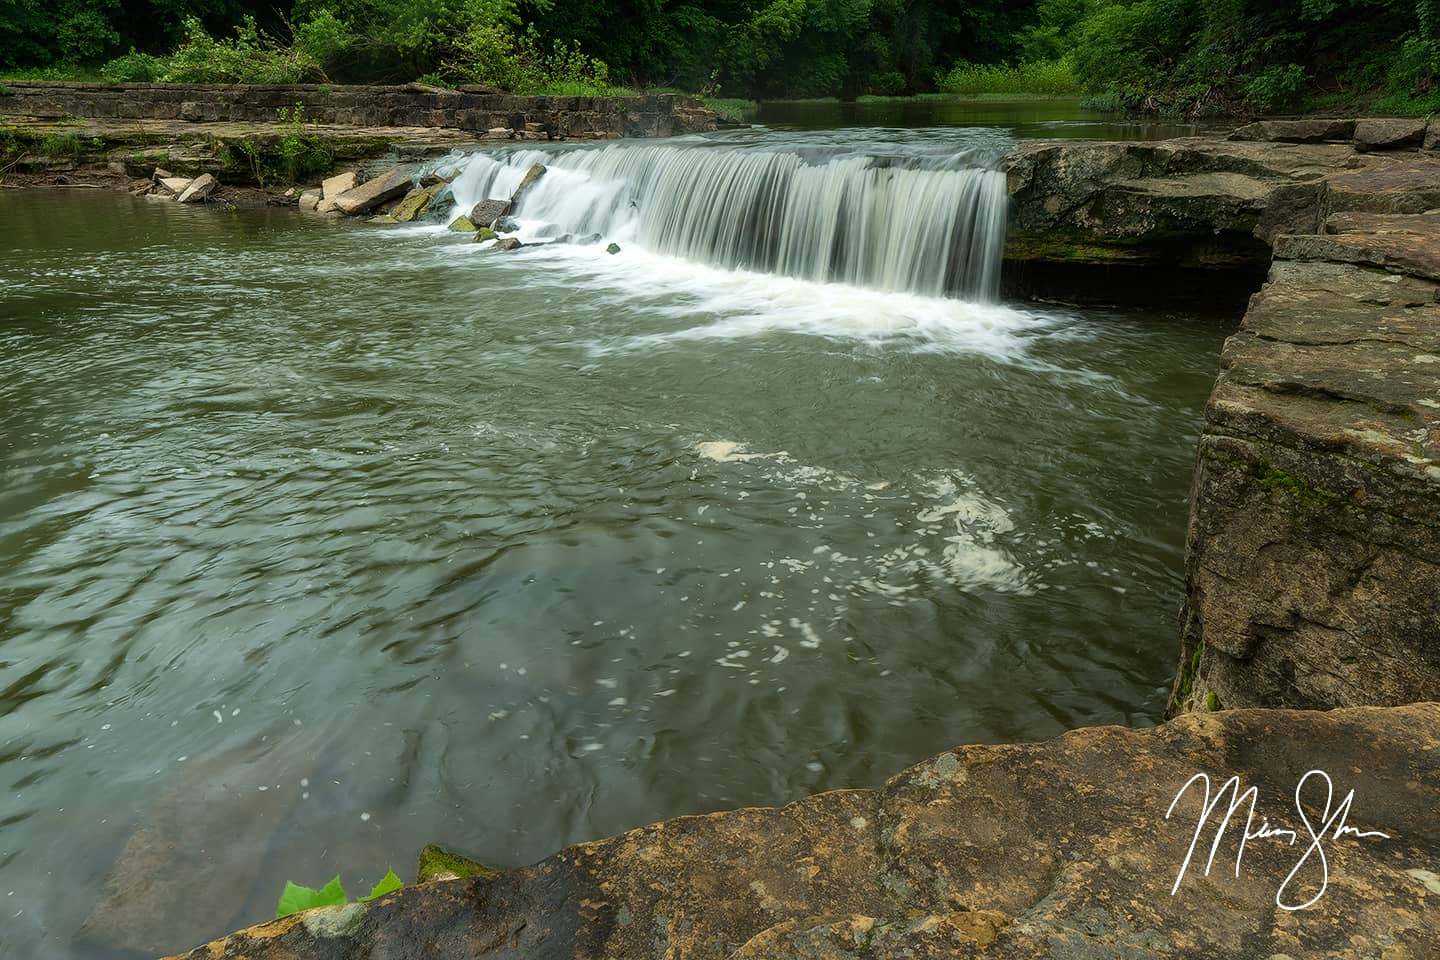 Open edition fine art print of Beautiful Elk Falls from Mickey Shannon Photography. Location: Elk Falls, Kansas